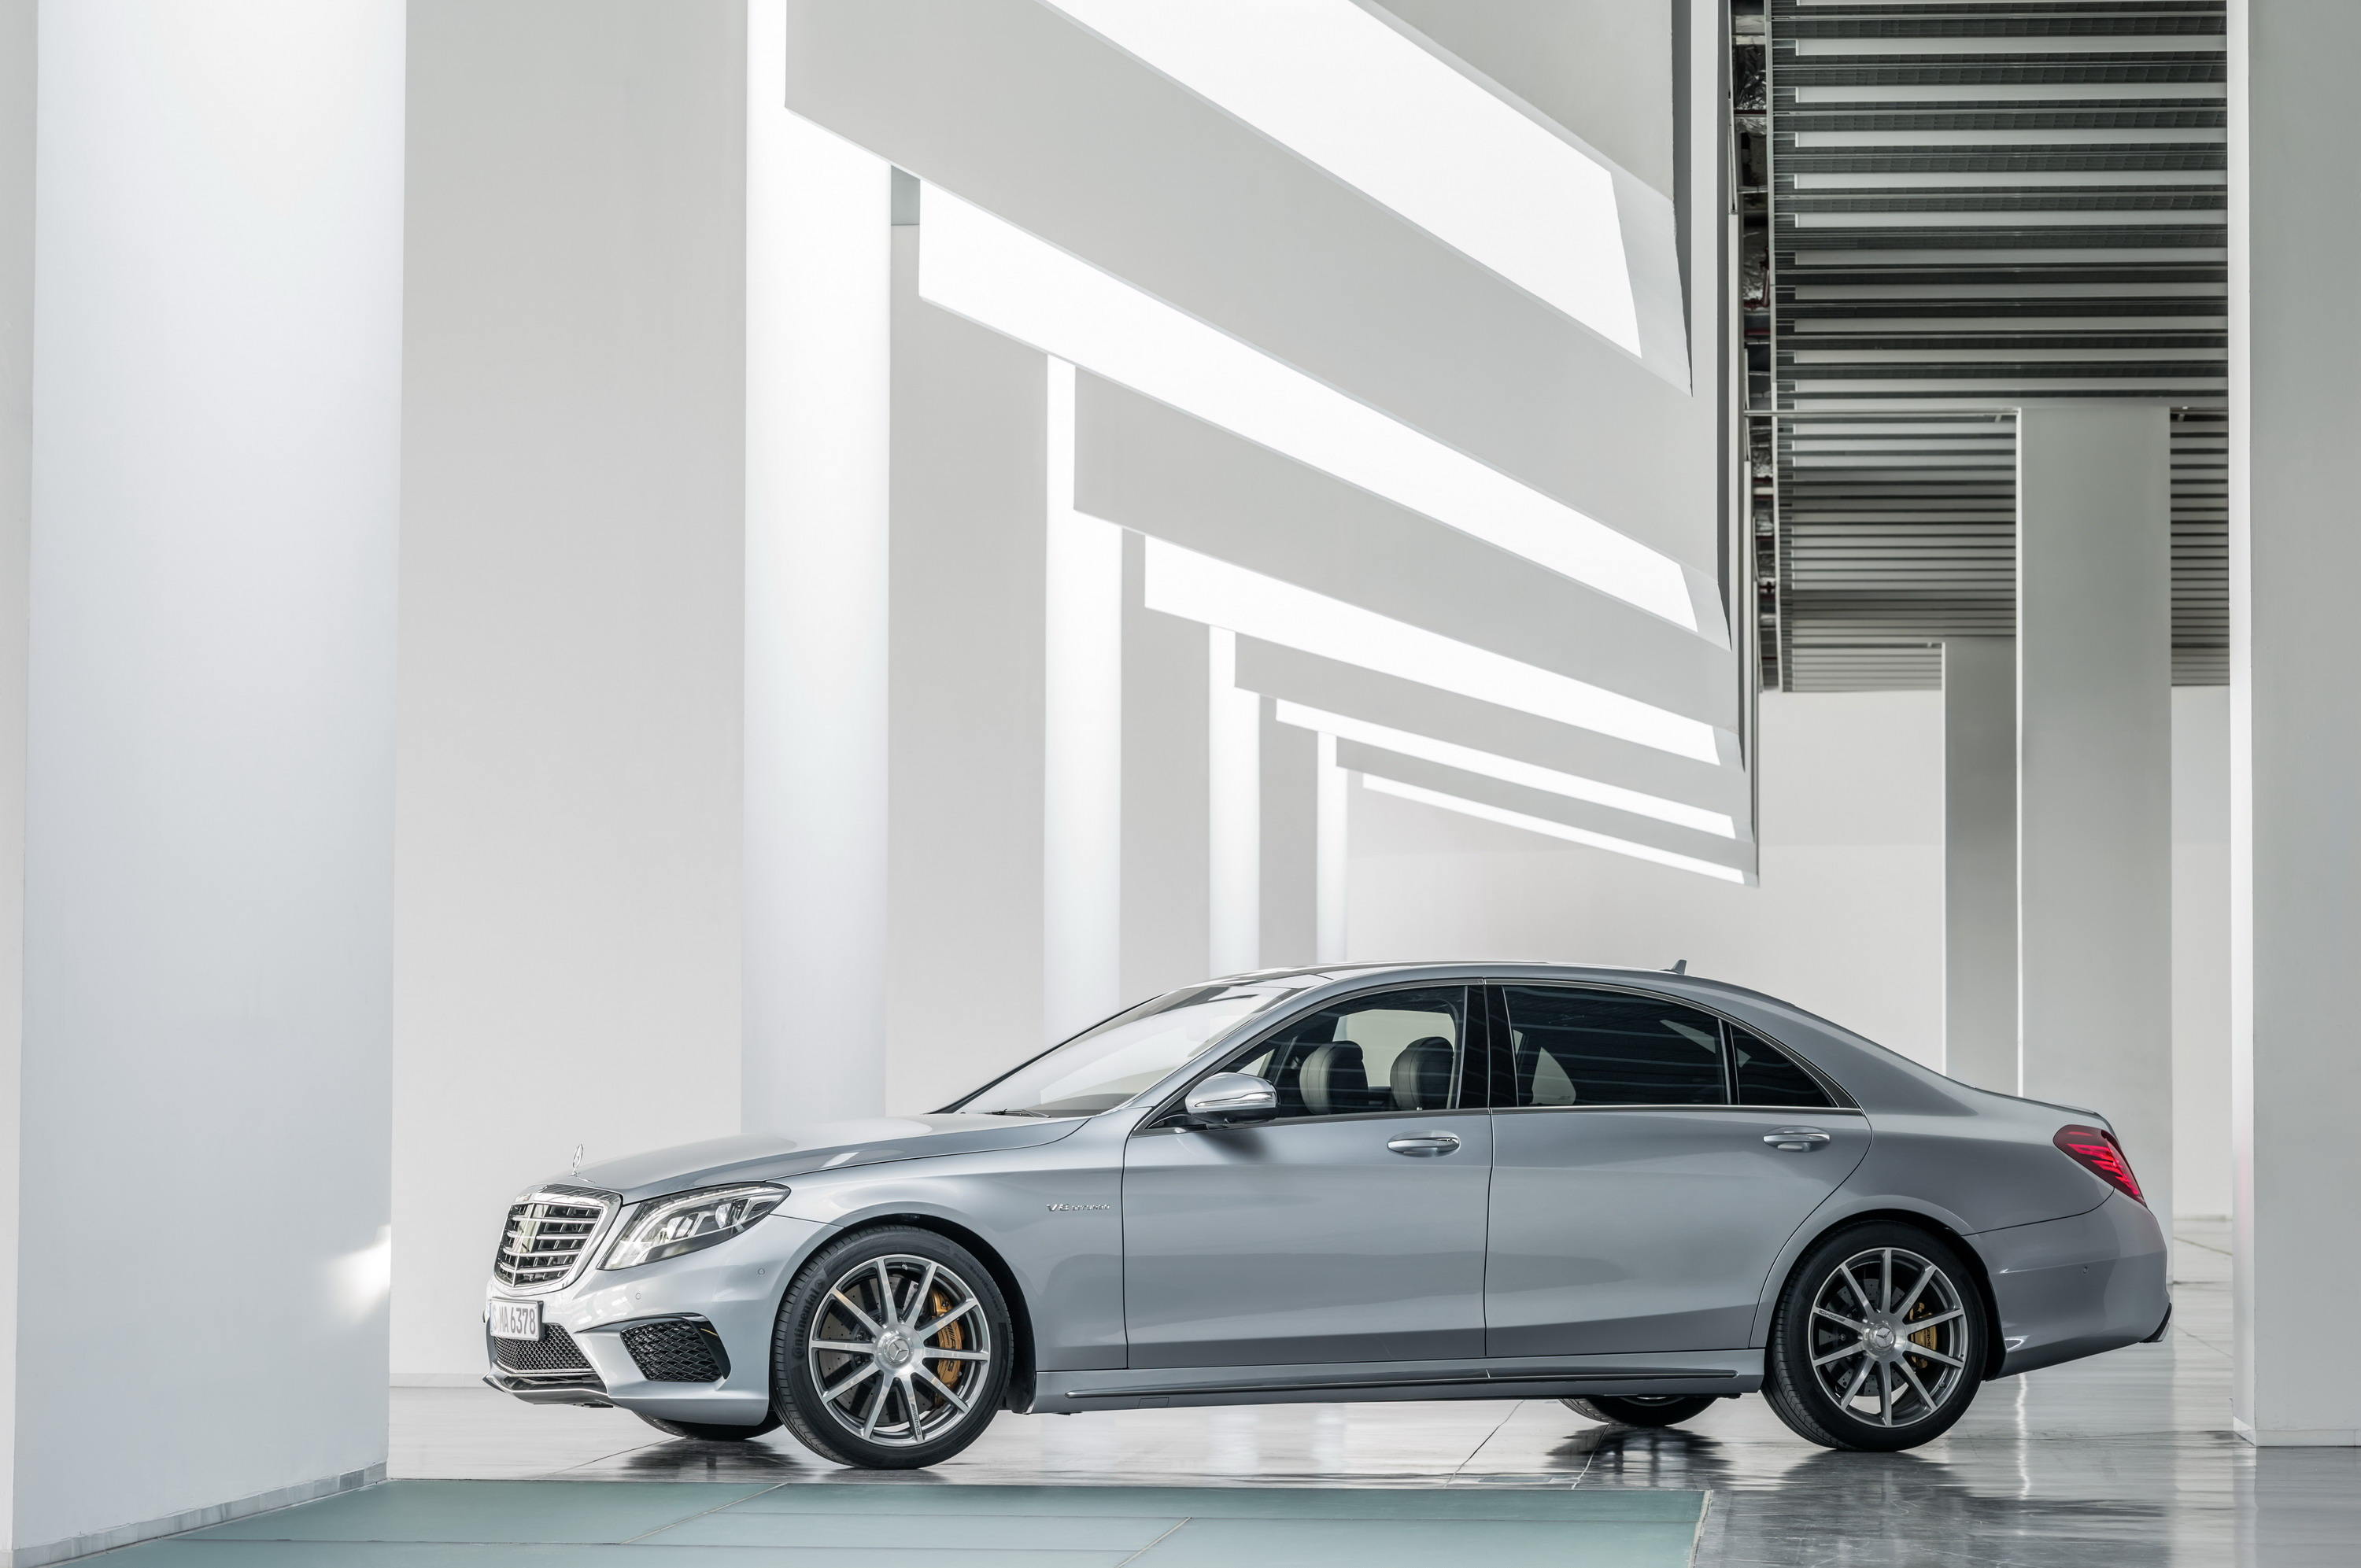 2014 Mercedes Benz S63 AMG 4MATIC | Top Speed. »